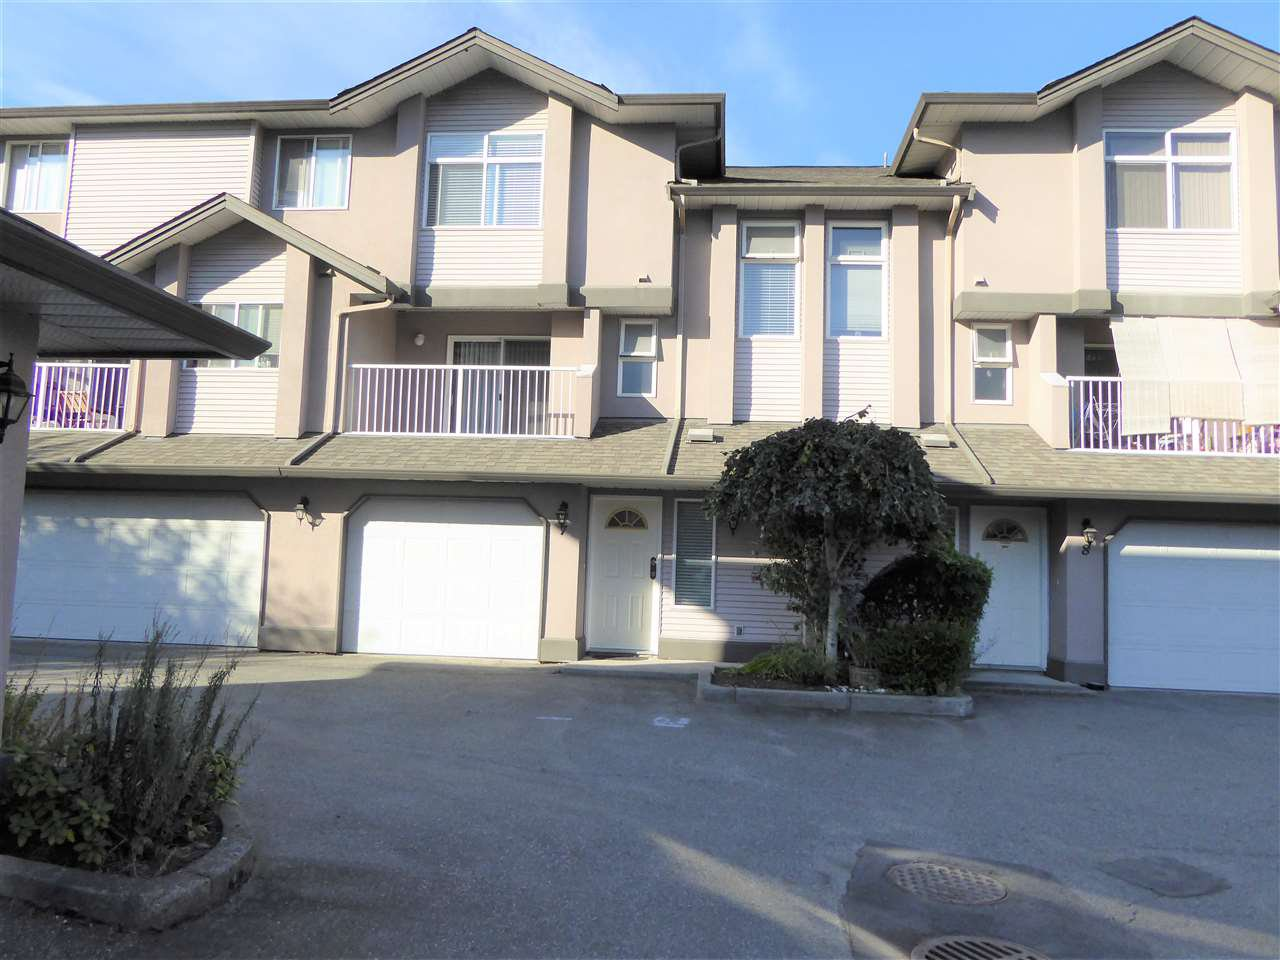 """Photo 1: Photos: 7 2538 PITT RIVER Road in Port Coquitlam: Mary Hill Townhouse for sale in """"RIVER COURT"""" : MLS®# R2392778"""